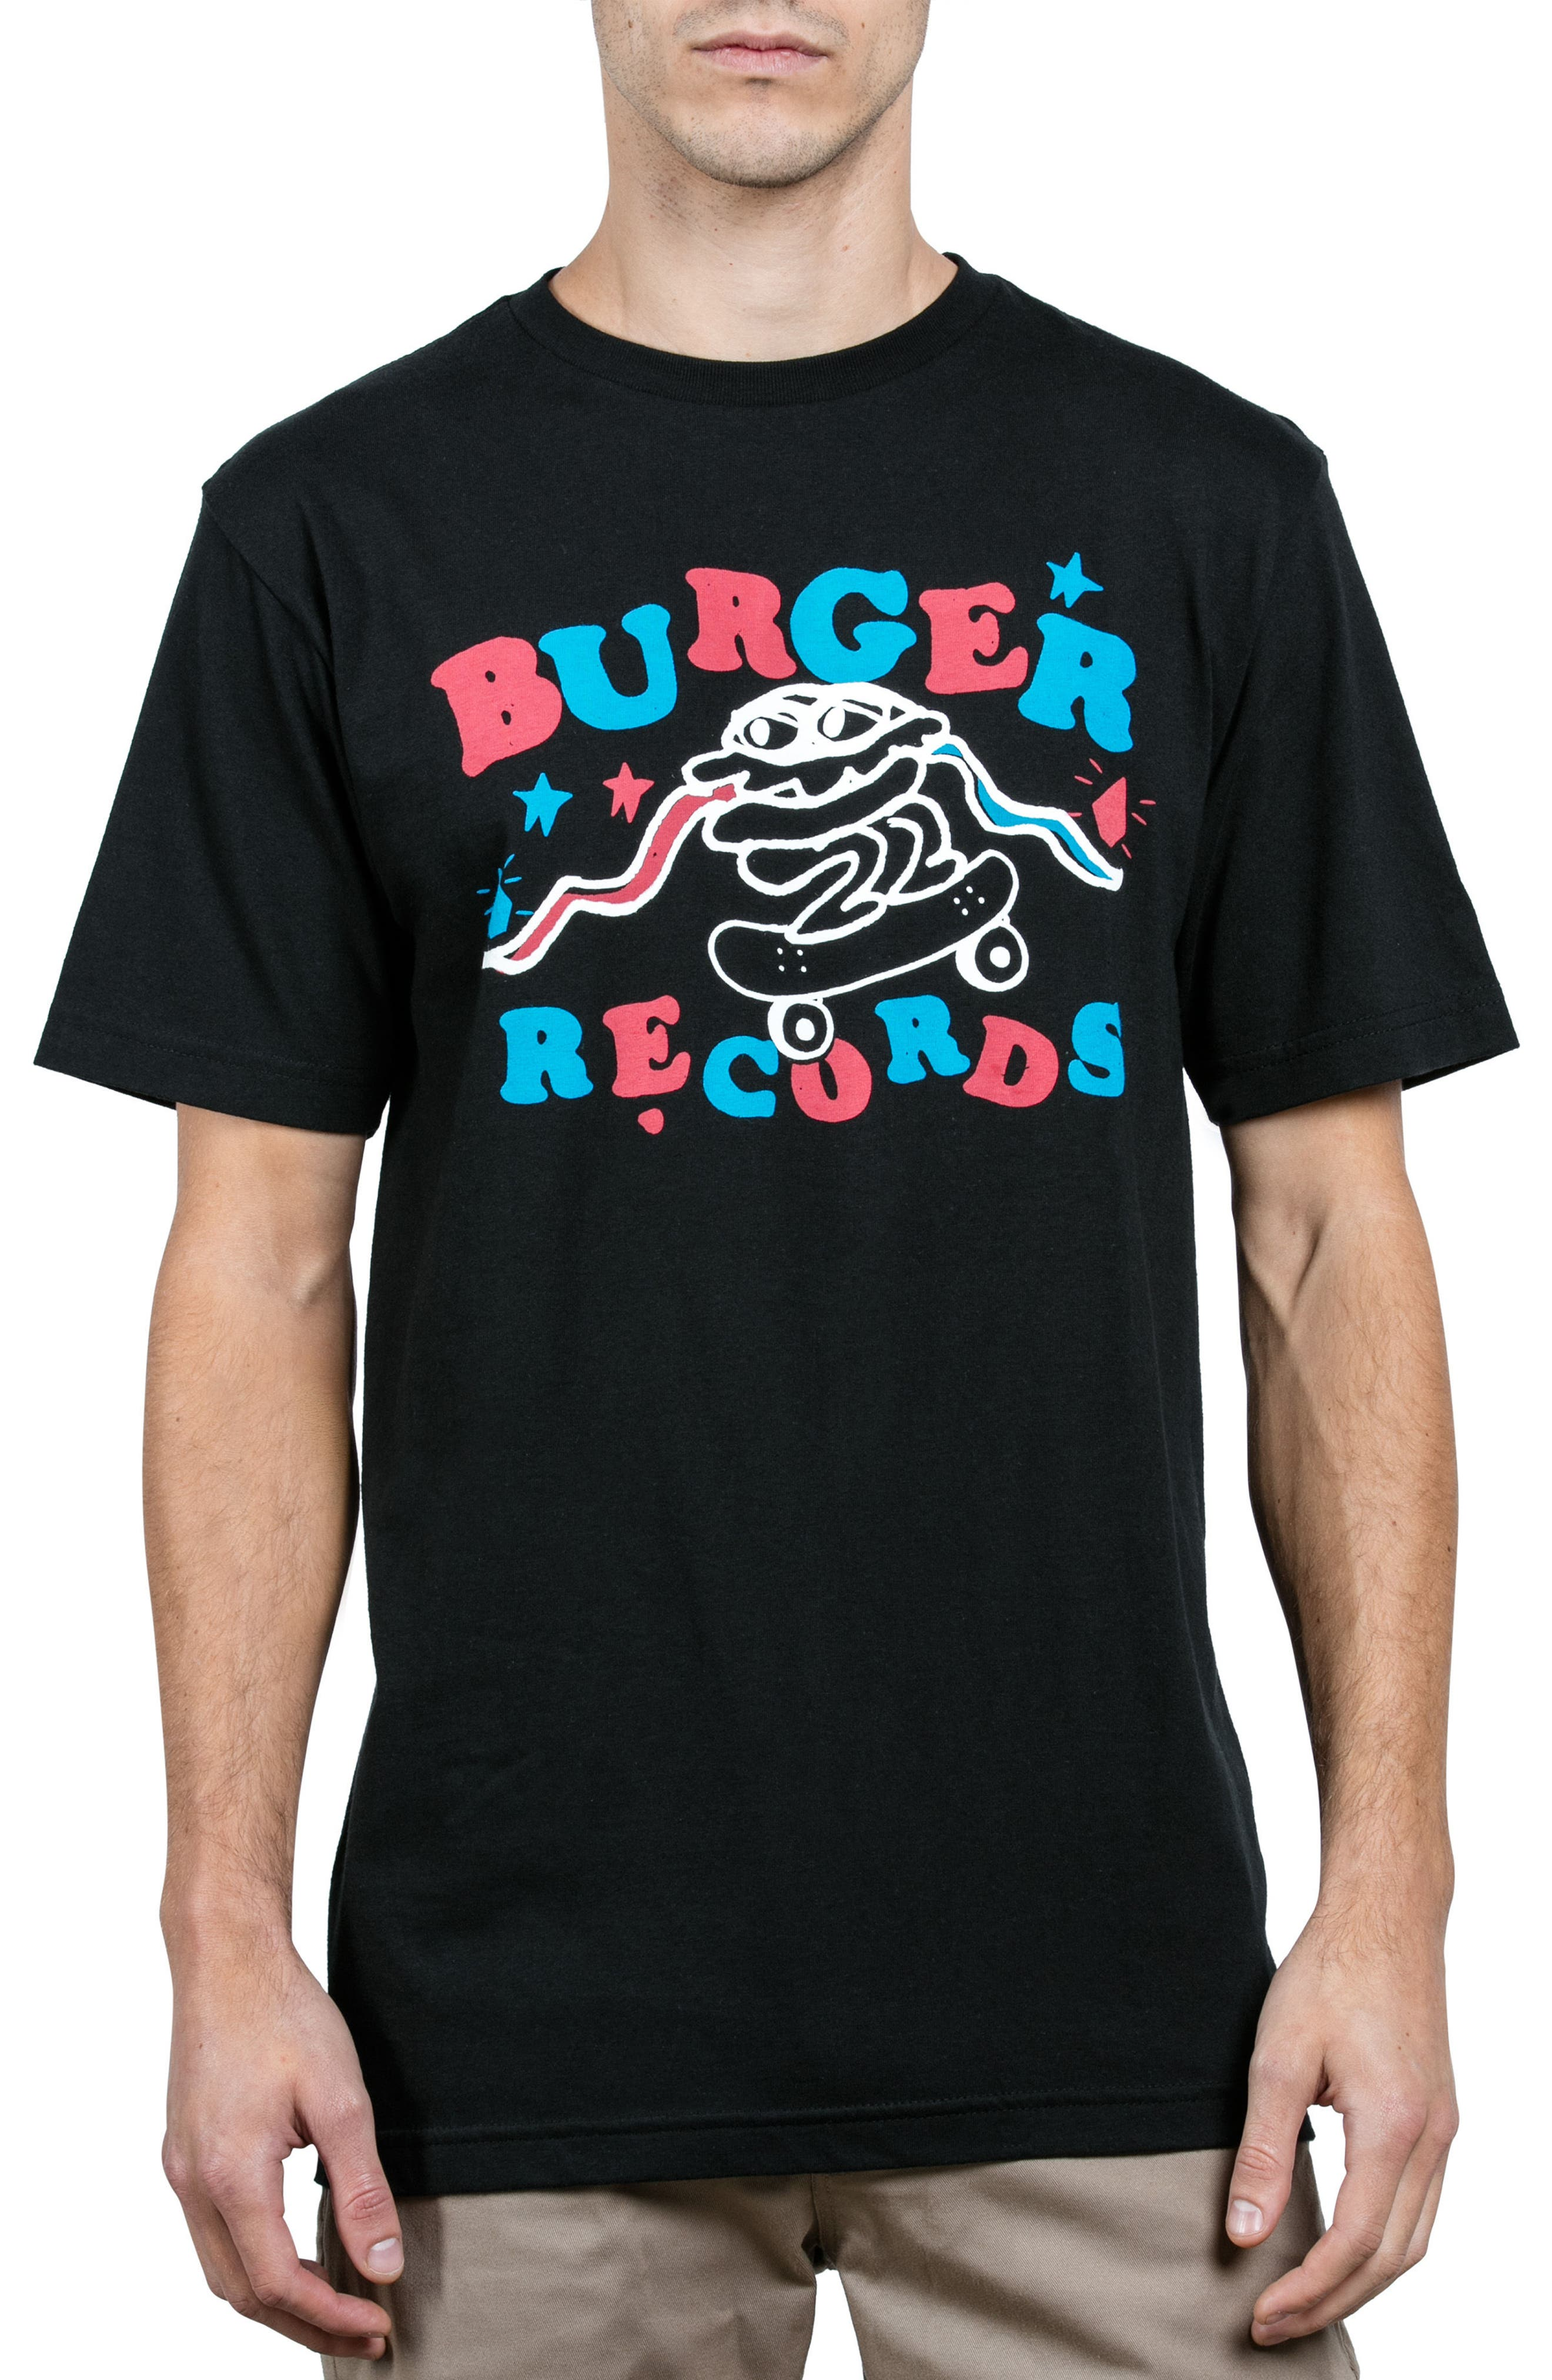 x Burger Records T-Shirt,                         Main,                         color, 001